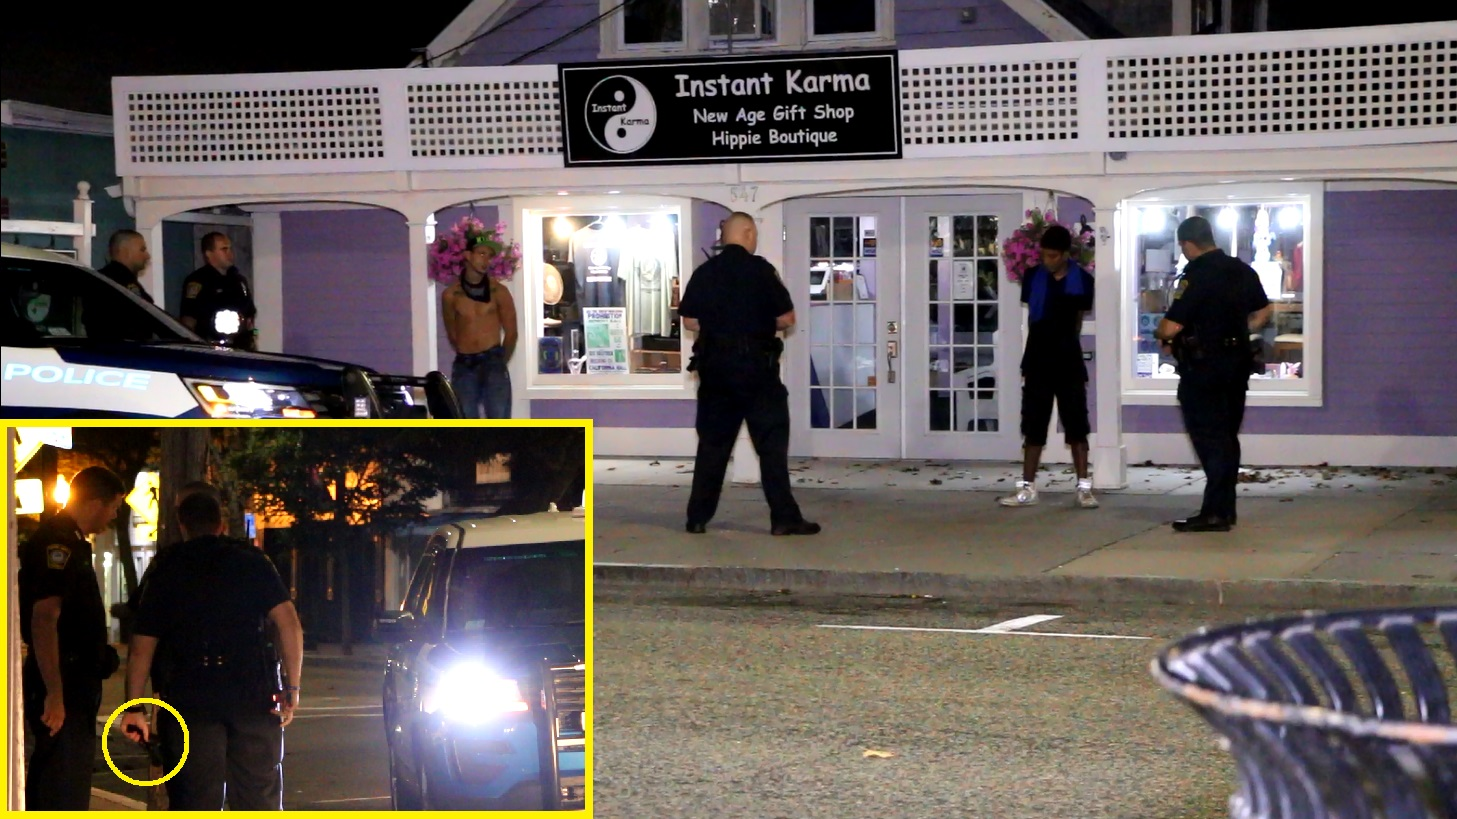 Suspects allegedly pulled gun on cabby… taken down in front of 'Instant Karma…' [VIDEO]